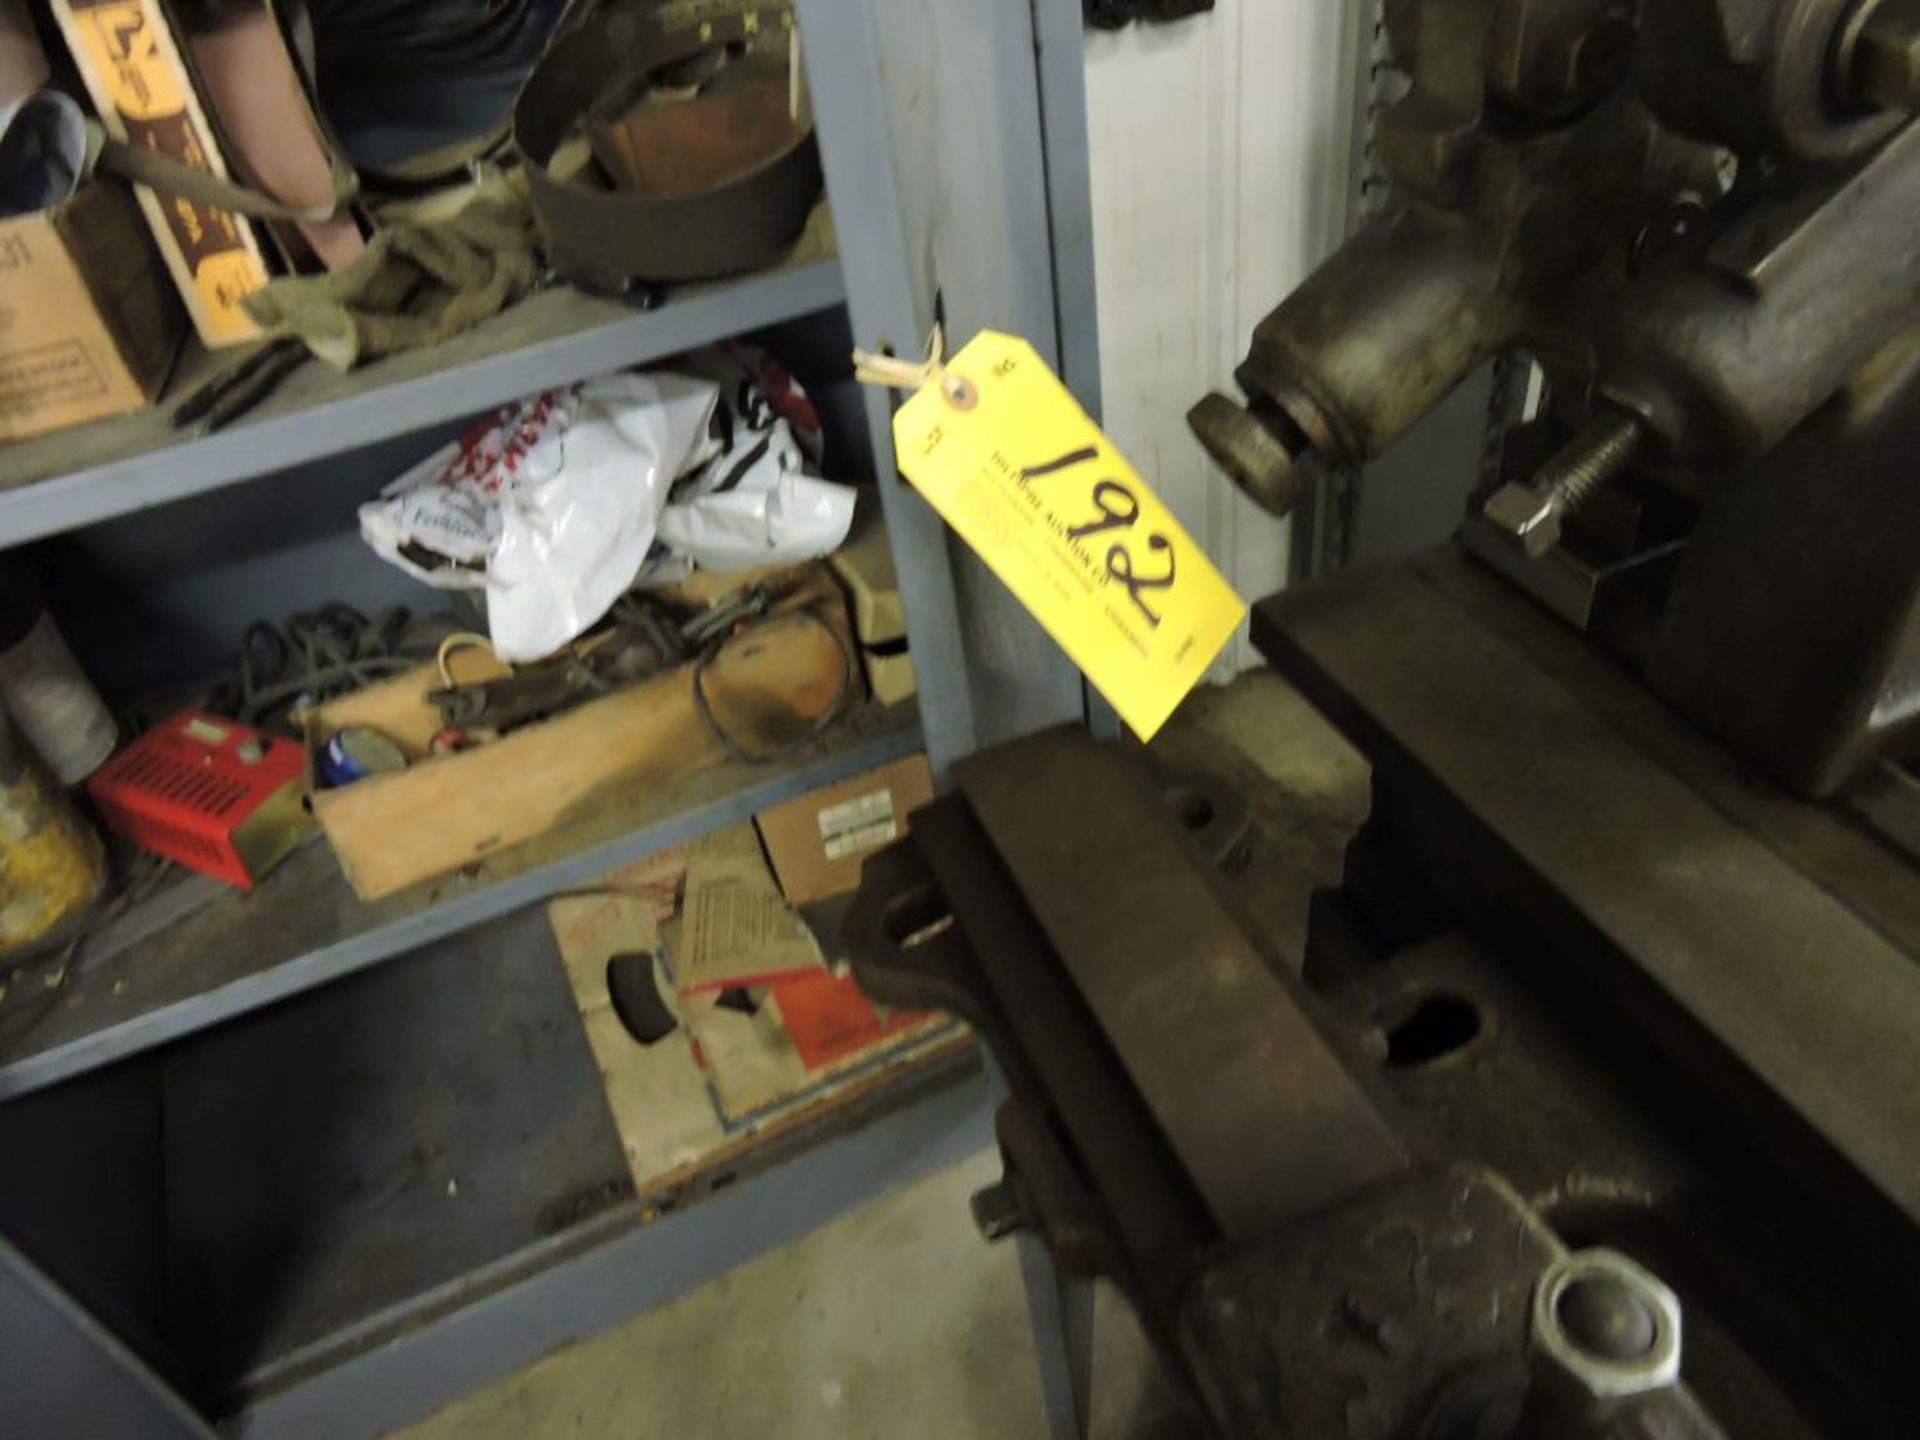 Two Door Cabinet W/ Contents Belt Dressing, Lapping compound, Sand Paper, Misc. - Image 2 of 3